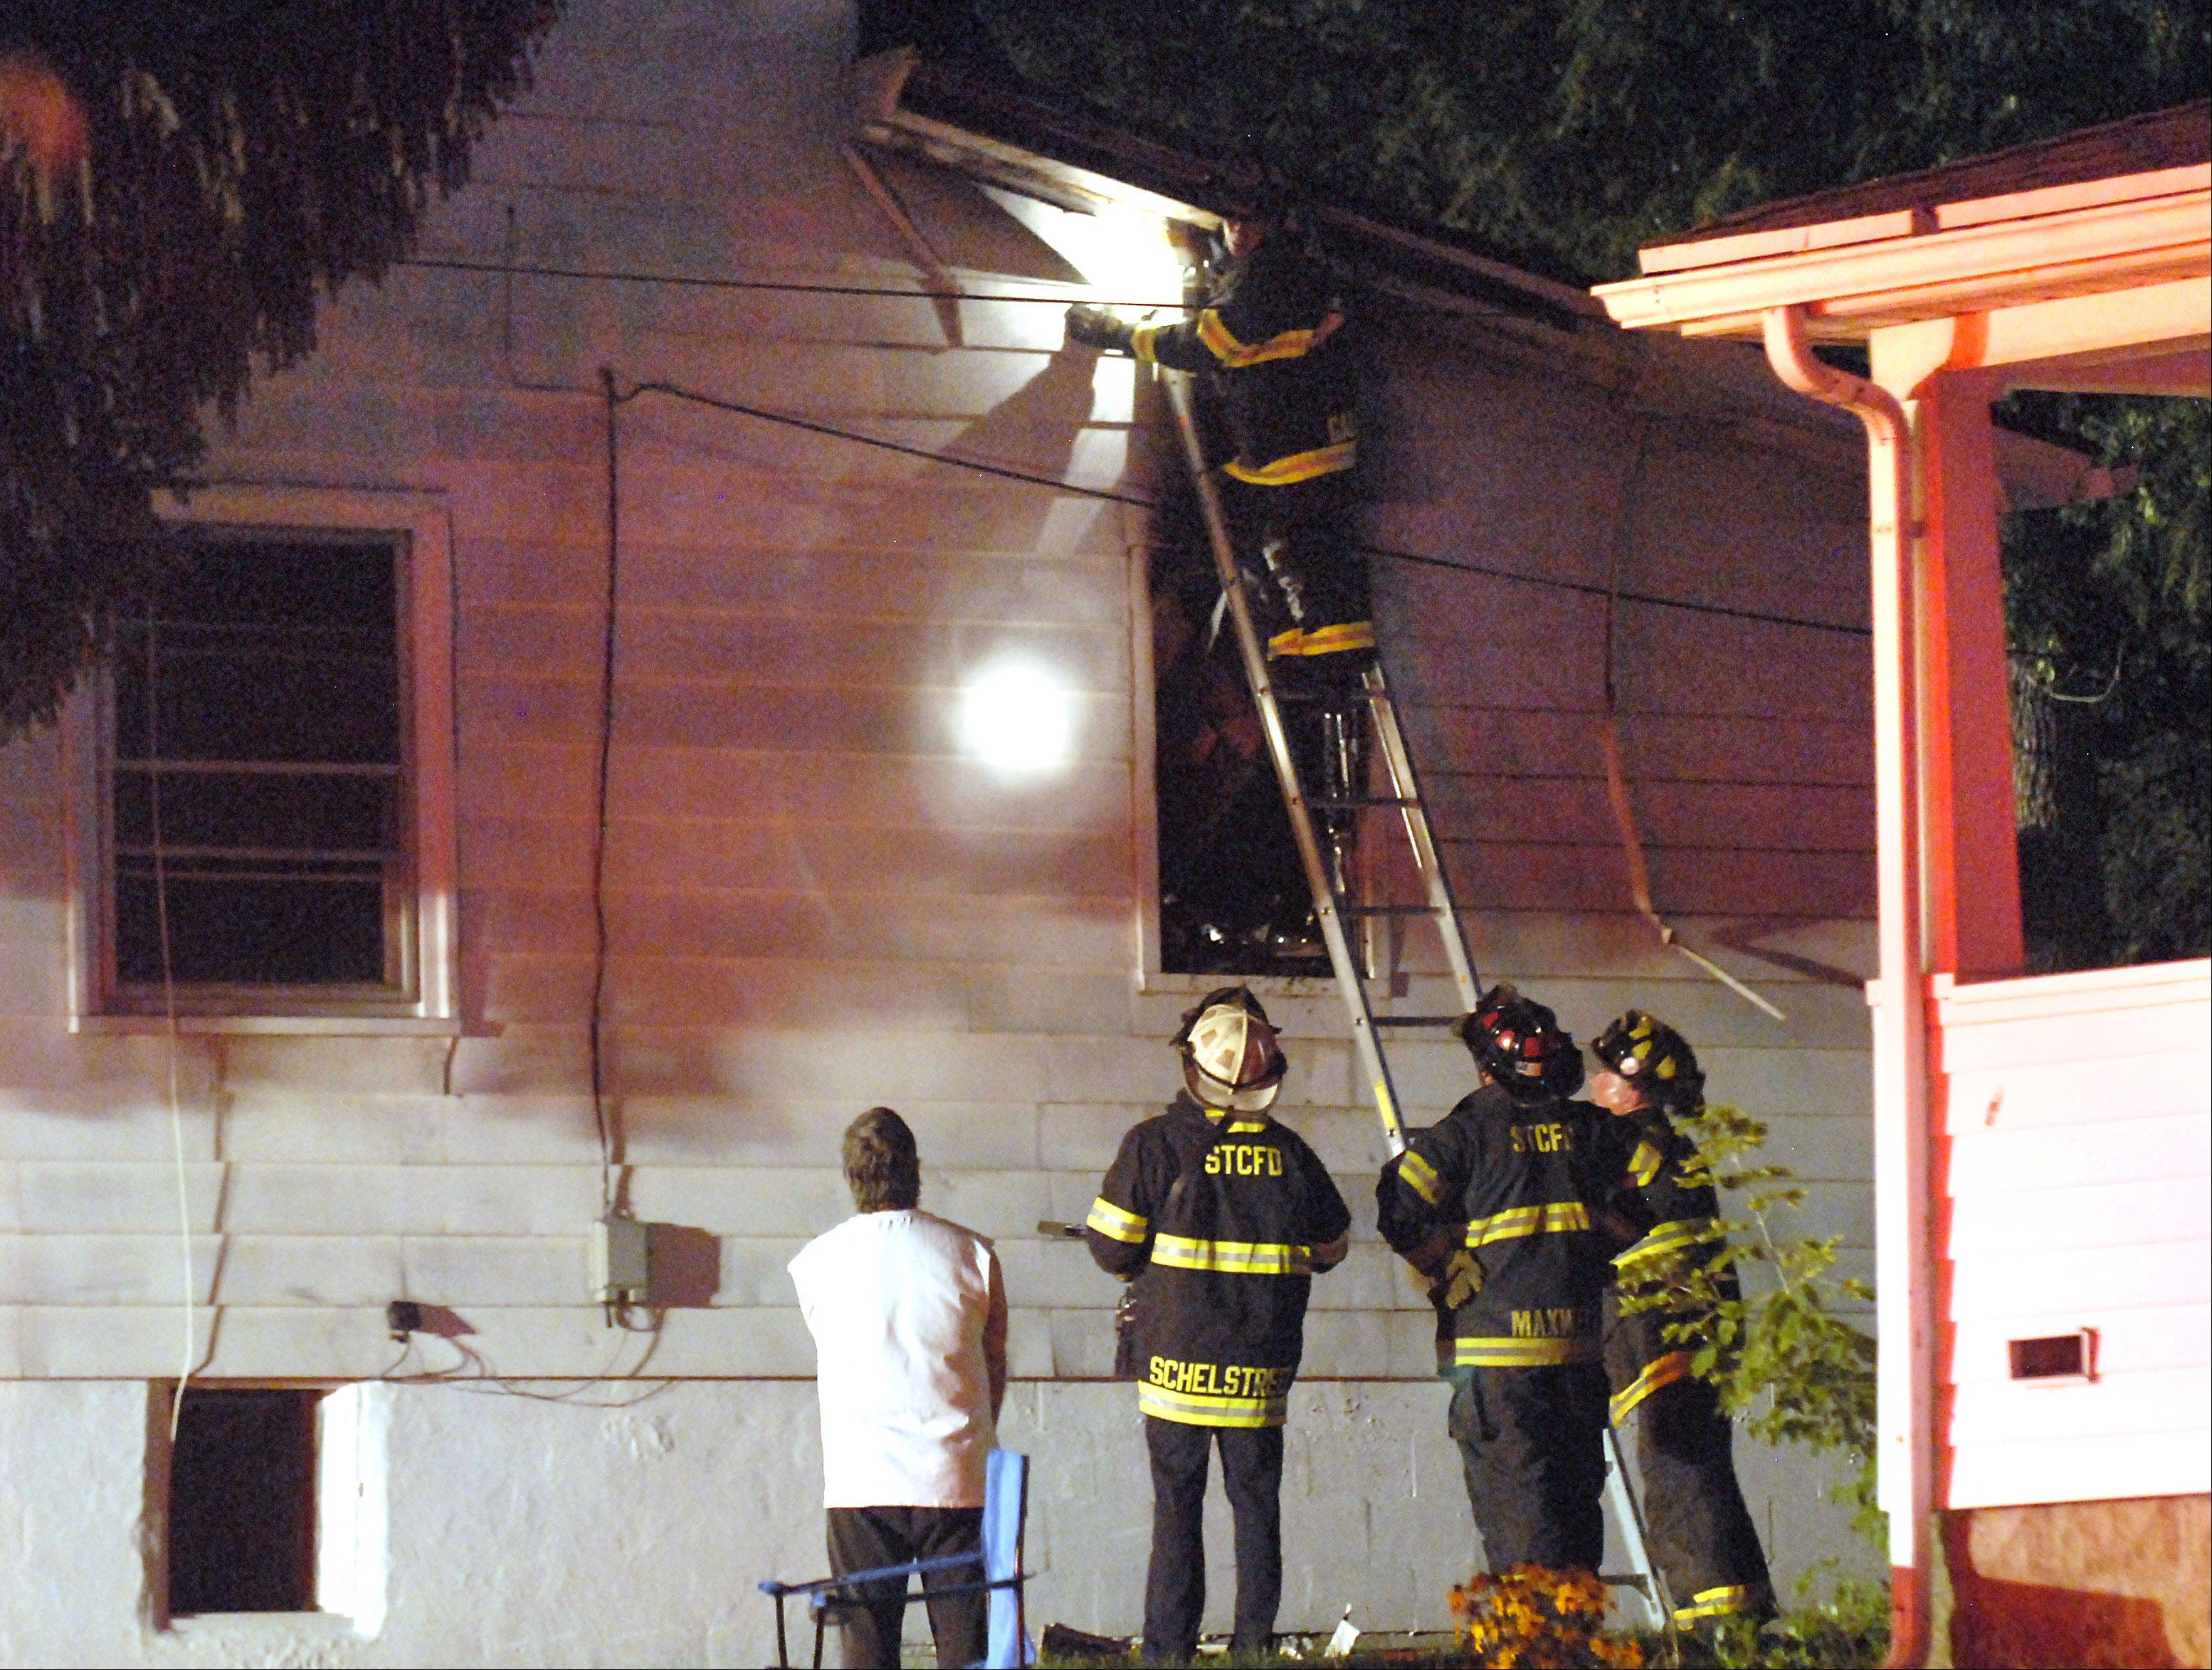 St. Charles firefighters check the roof after extinguishing a house fire on the 0-100 block of North 12th Street in St. Charles Friday night. Several fire departments -- including St. Charles, Geneva, Batavia and South Elgin -- responded to the fire, which was contained within 30 minutes. No injuries were reported, but the home was left uninhabitable.